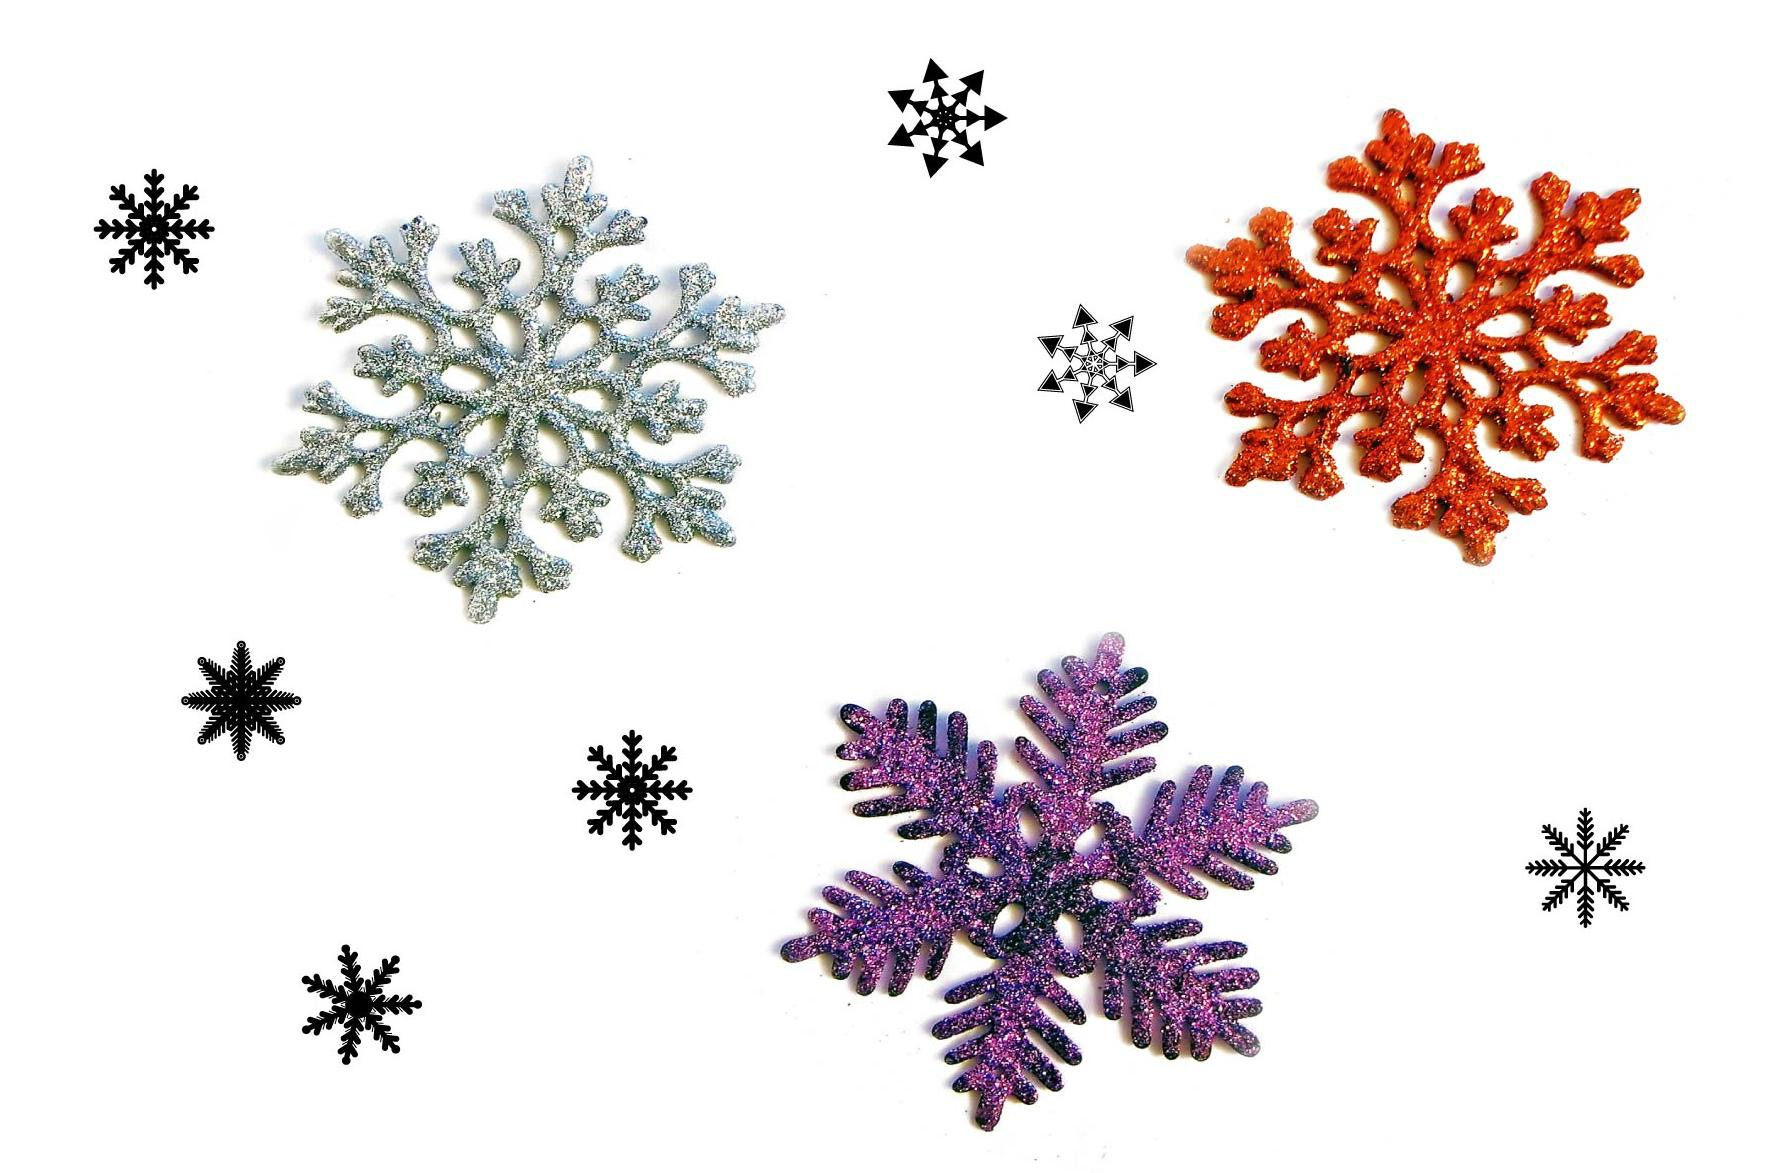 Neve Chimica - Chimistry Snowflakes - Neige Chimie - Nieve Quimica